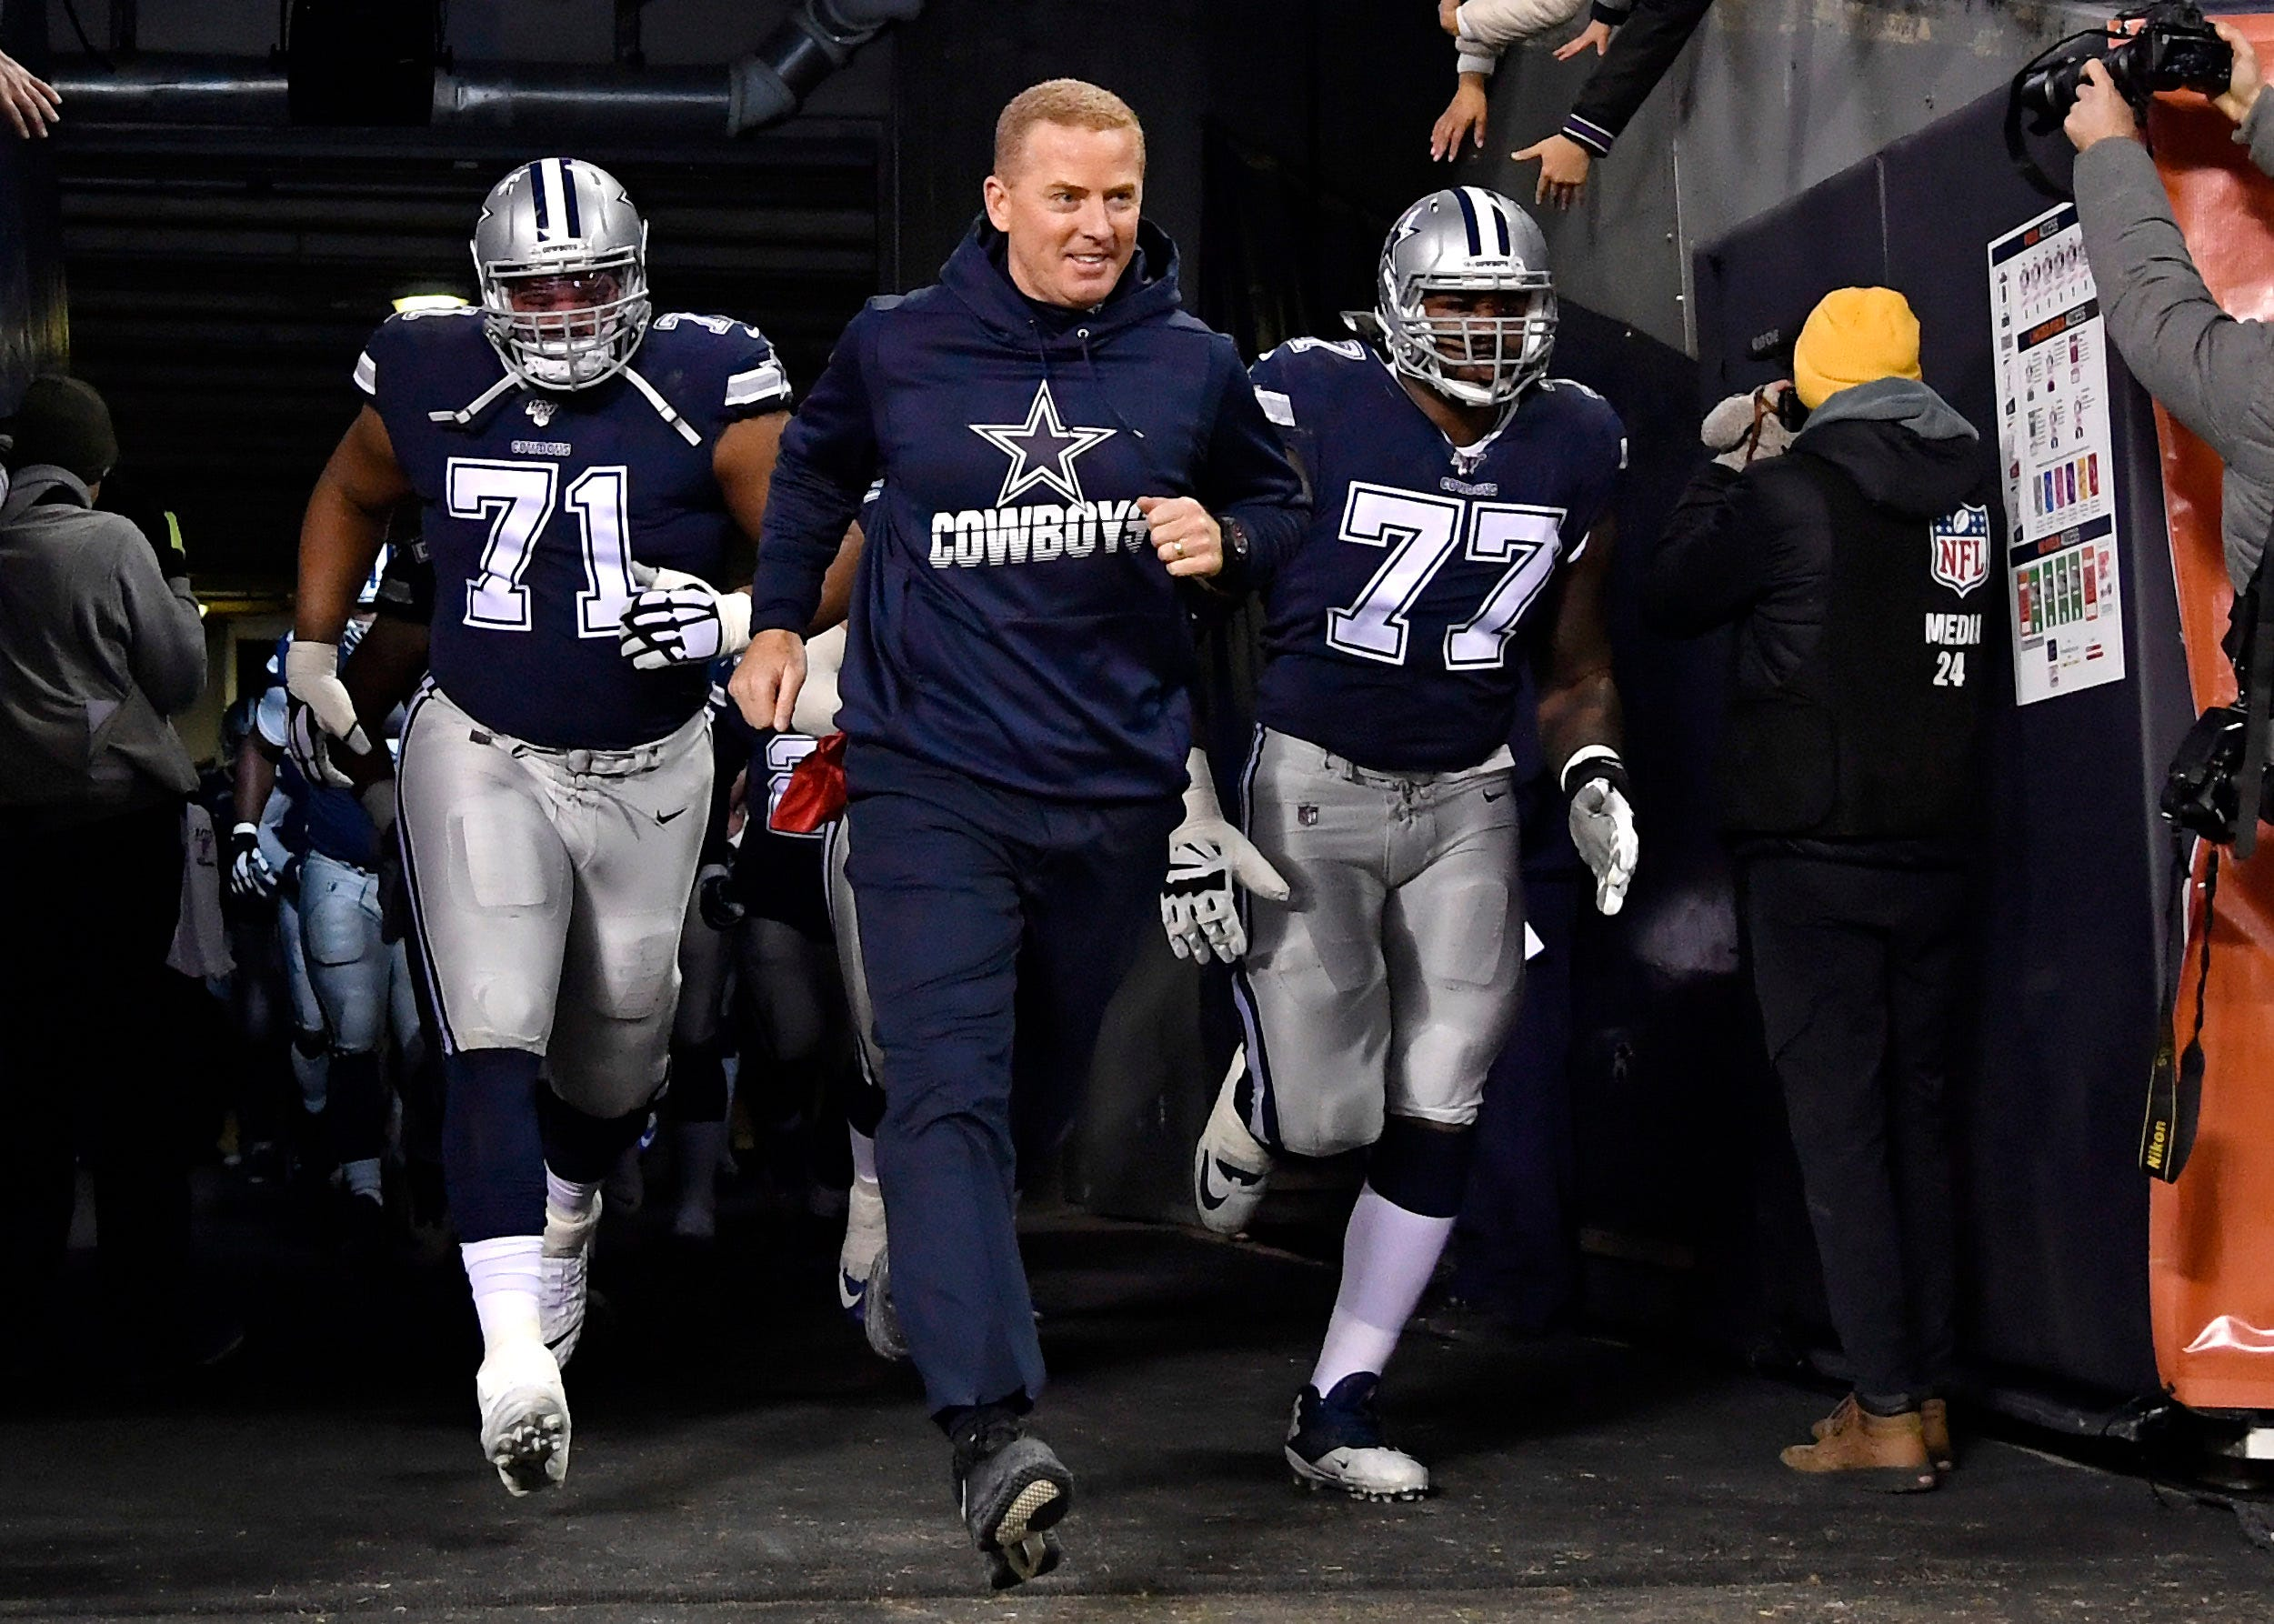 'A great visual': Jason Garrett shows Cowboys highlight reel as motivation amid slump